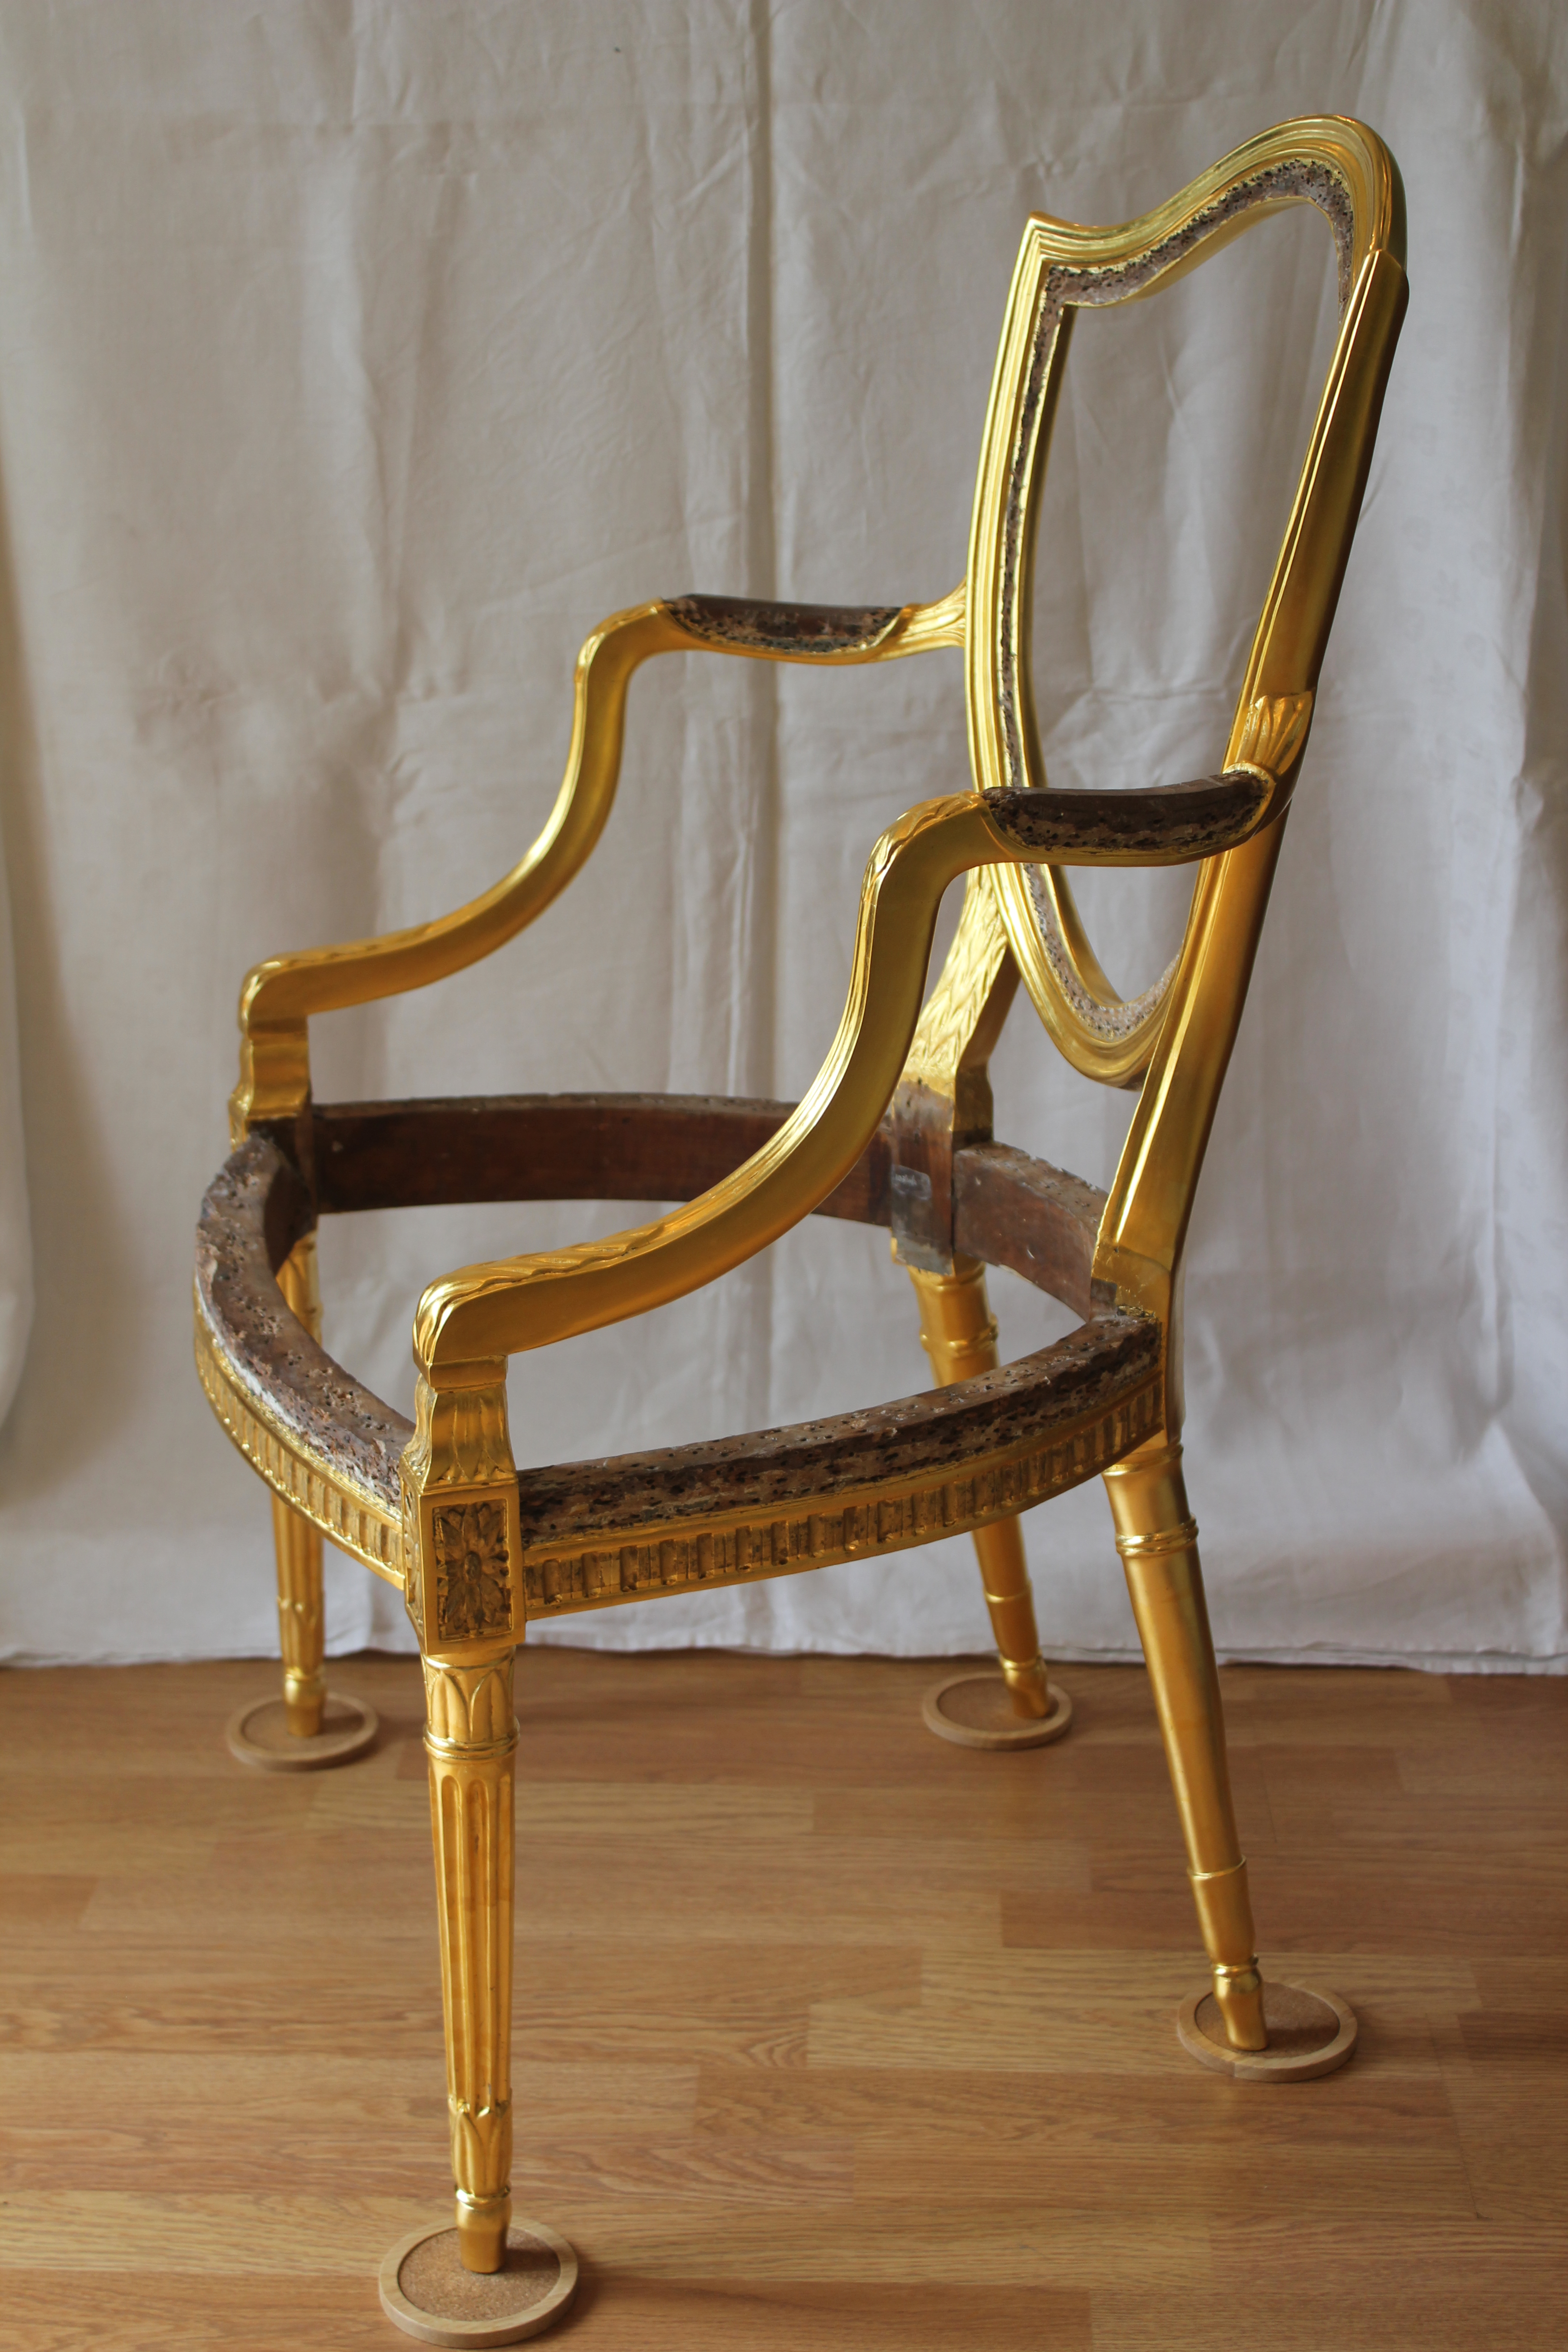 Gillows chairs from Weston Park